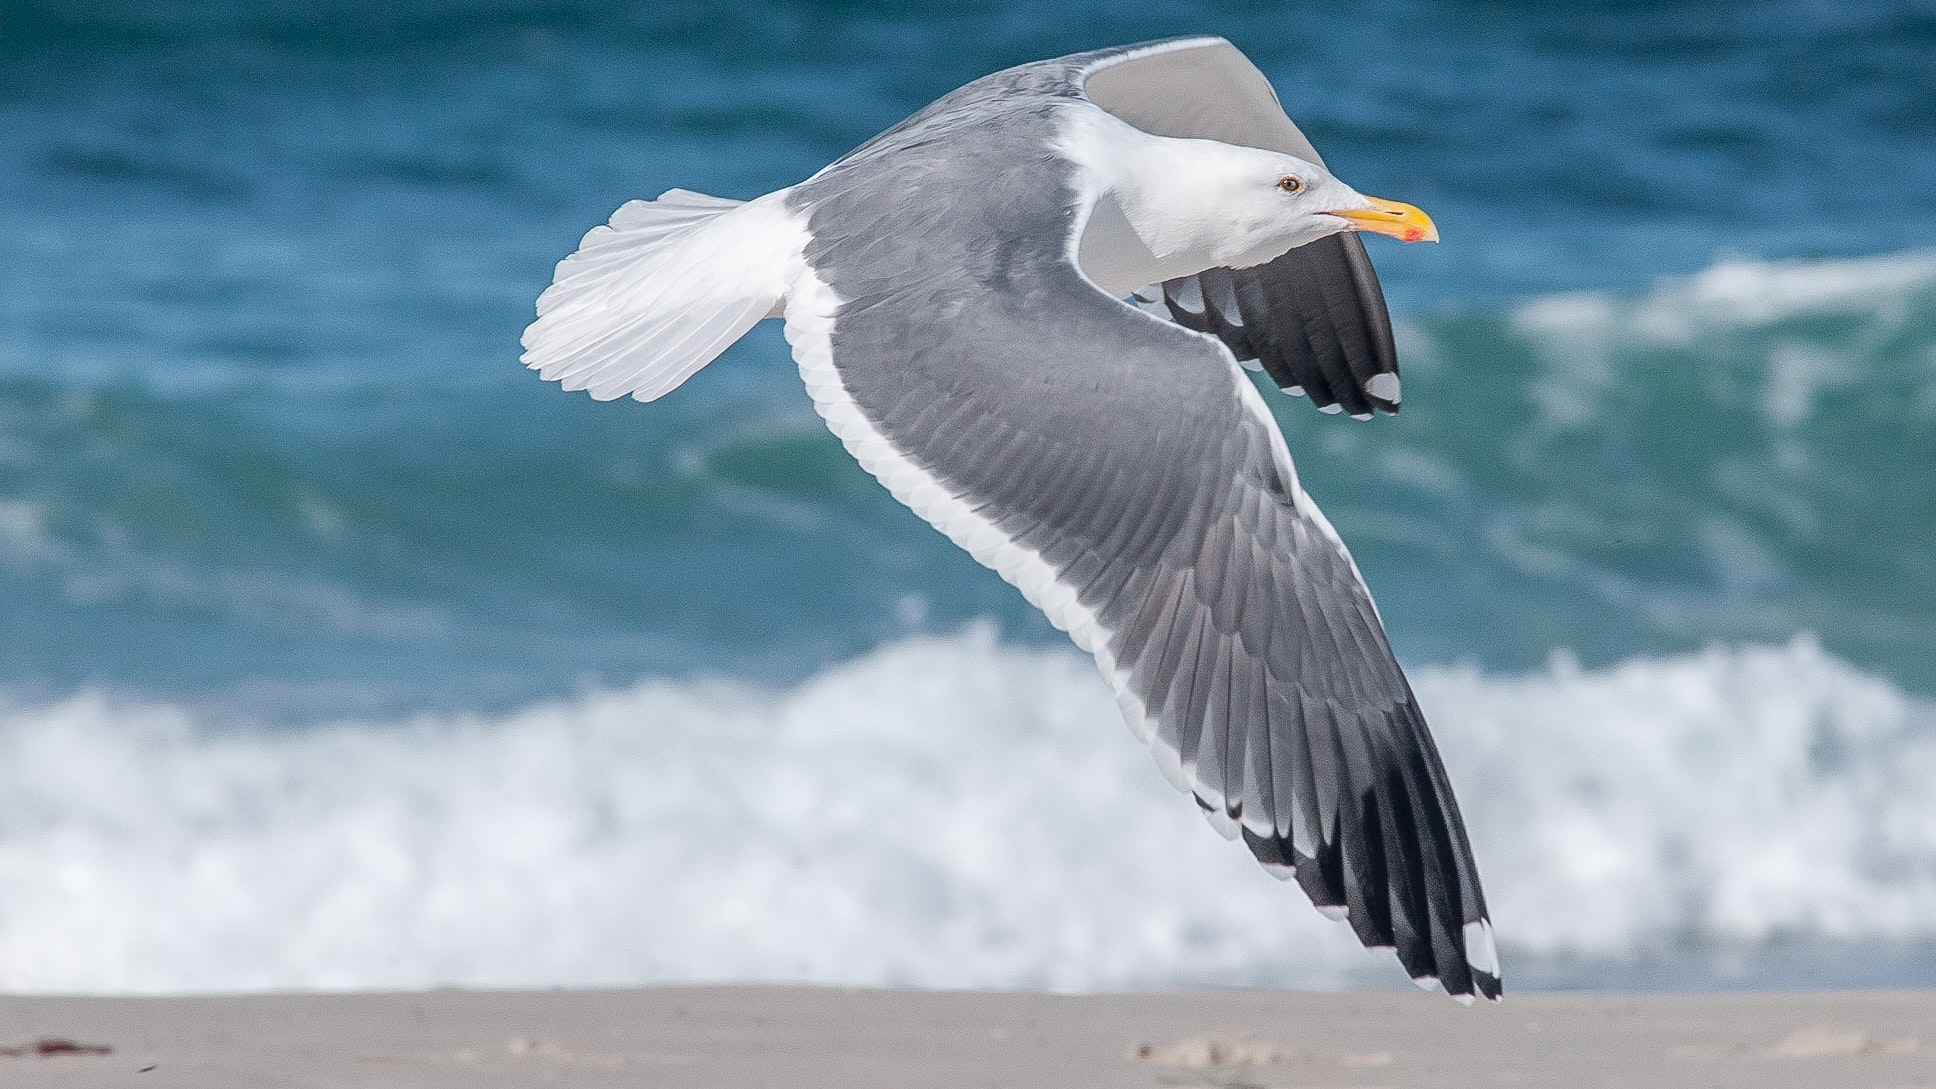 white and gray seagull flying near seashore